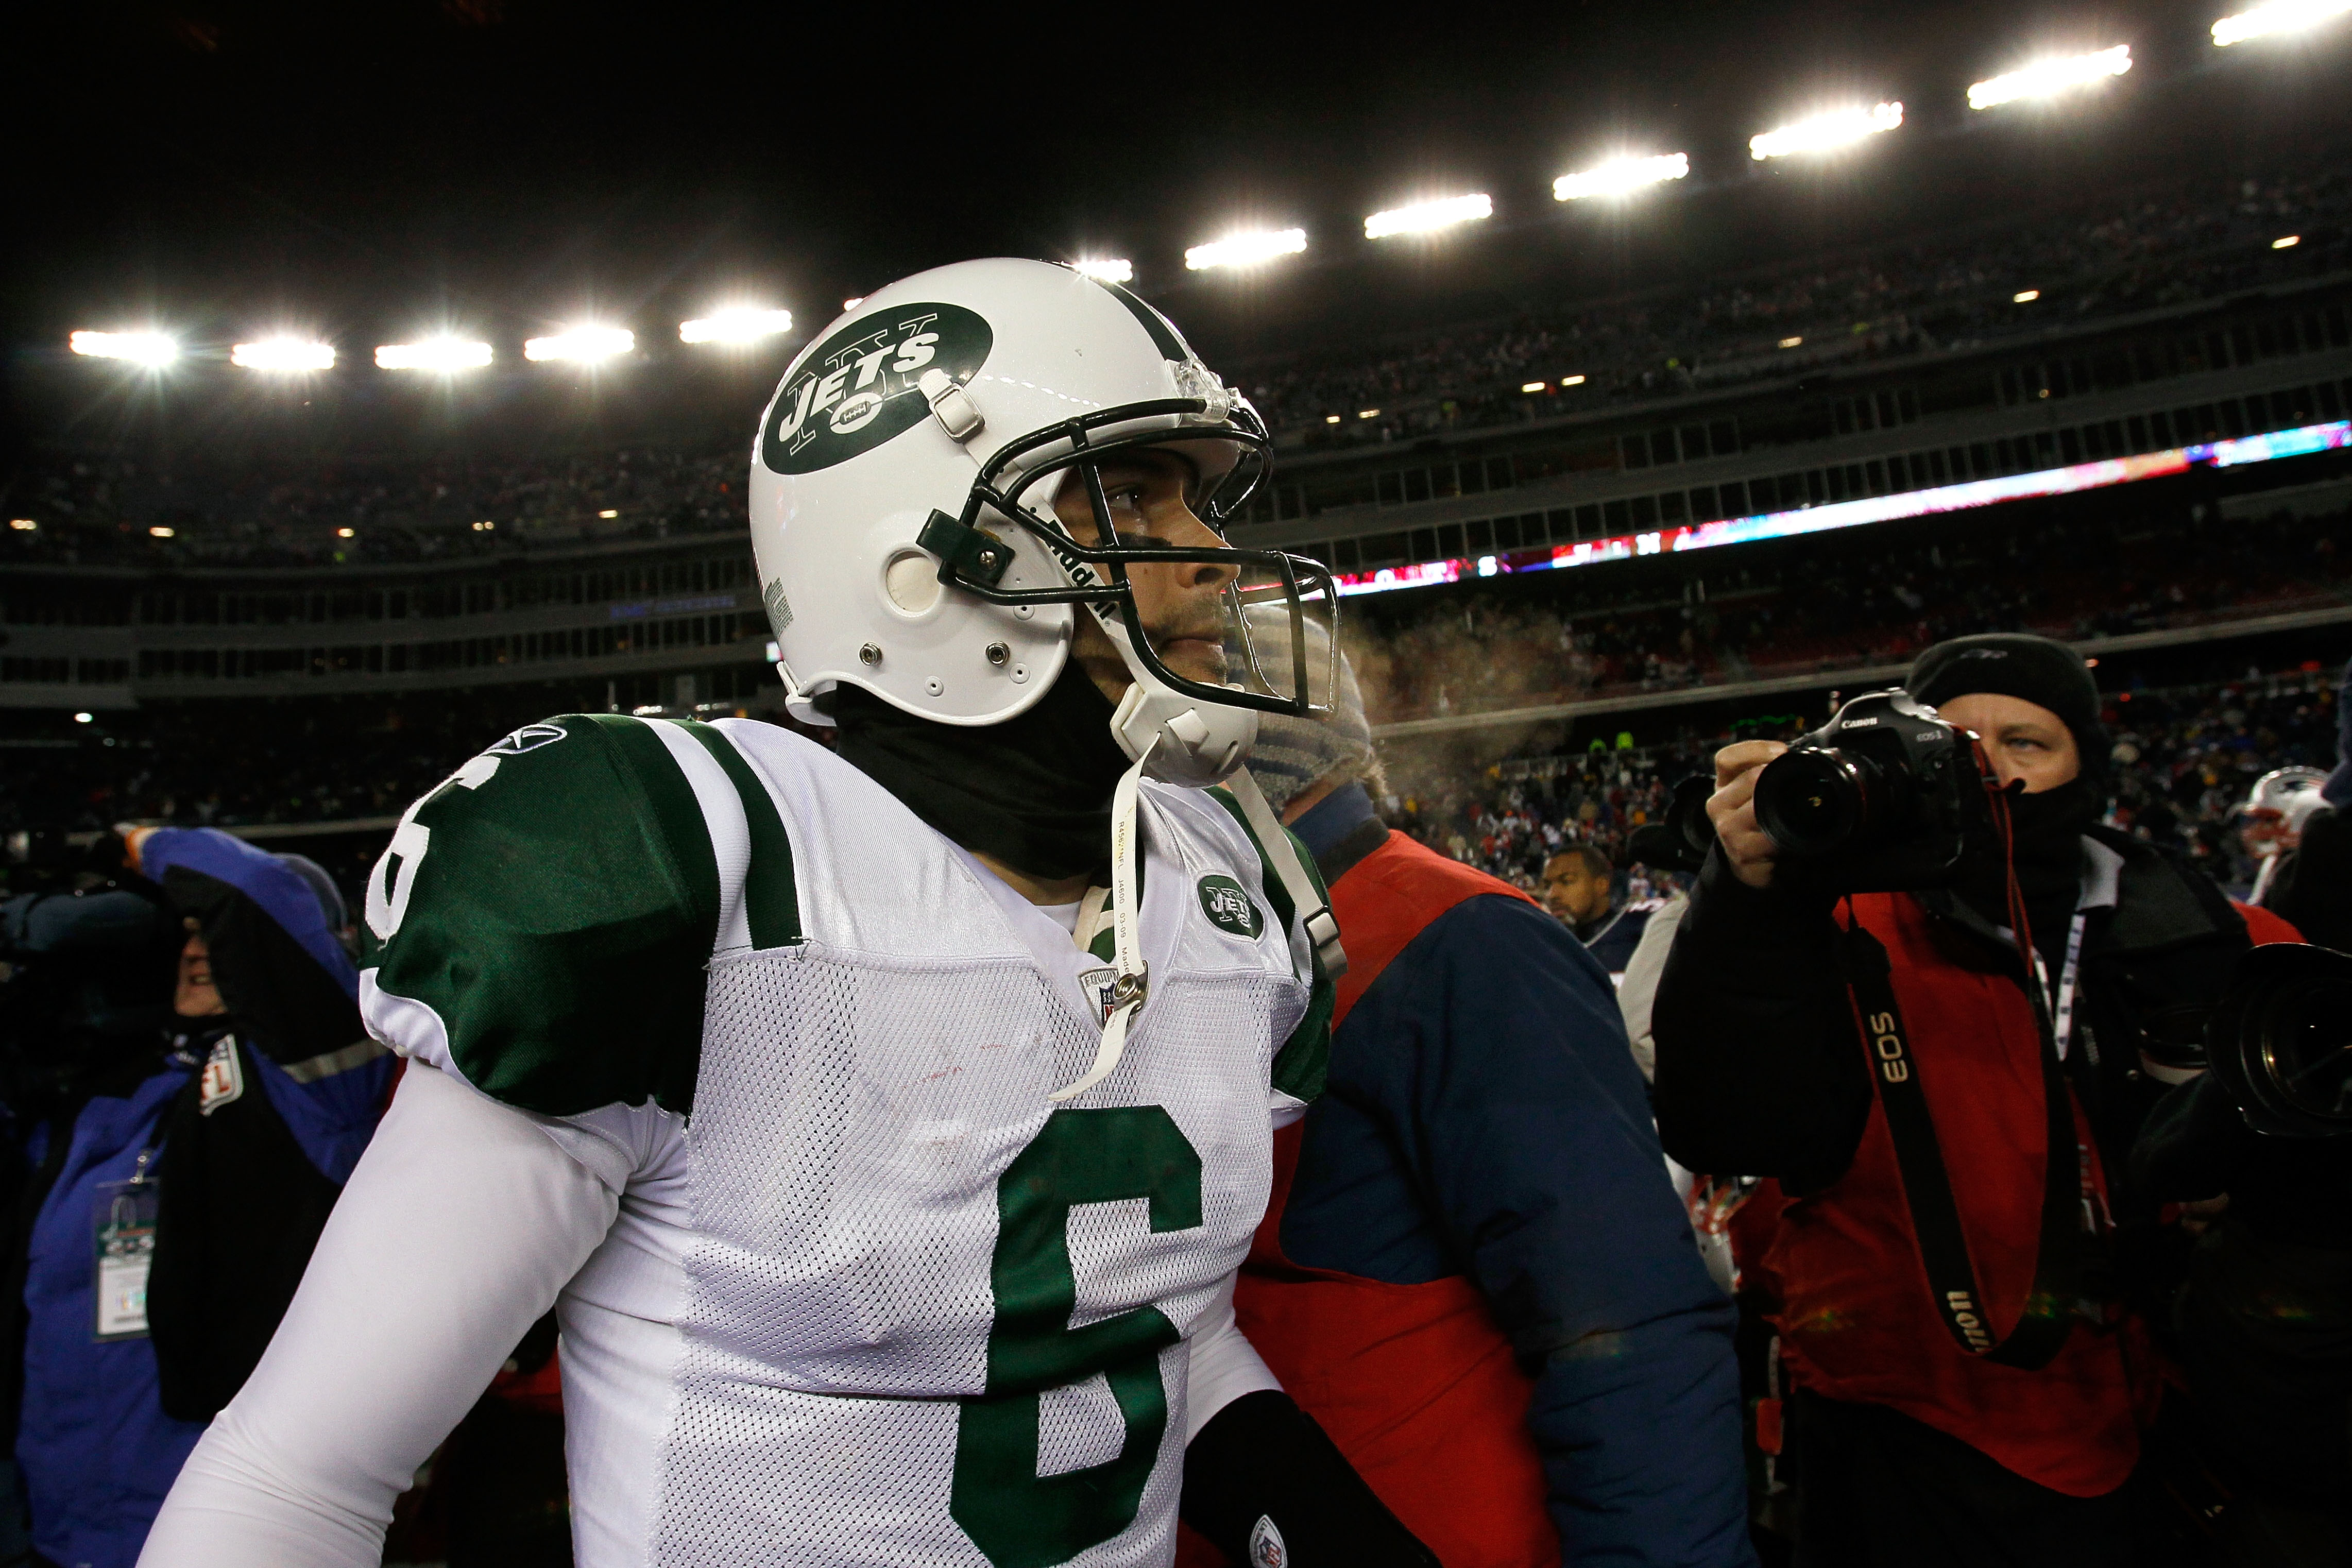 FOXBORO, MA - DECEMBER 06:  Mark Sanchez #6 of the New York Jets walks off the field dejected after the Jets loast 45-3 against the New England Patriots at Gillette Stadium on December 6, 2010 in Foxboro, Massachusetts.  (Photo by Jim Rogash/Getty Images)